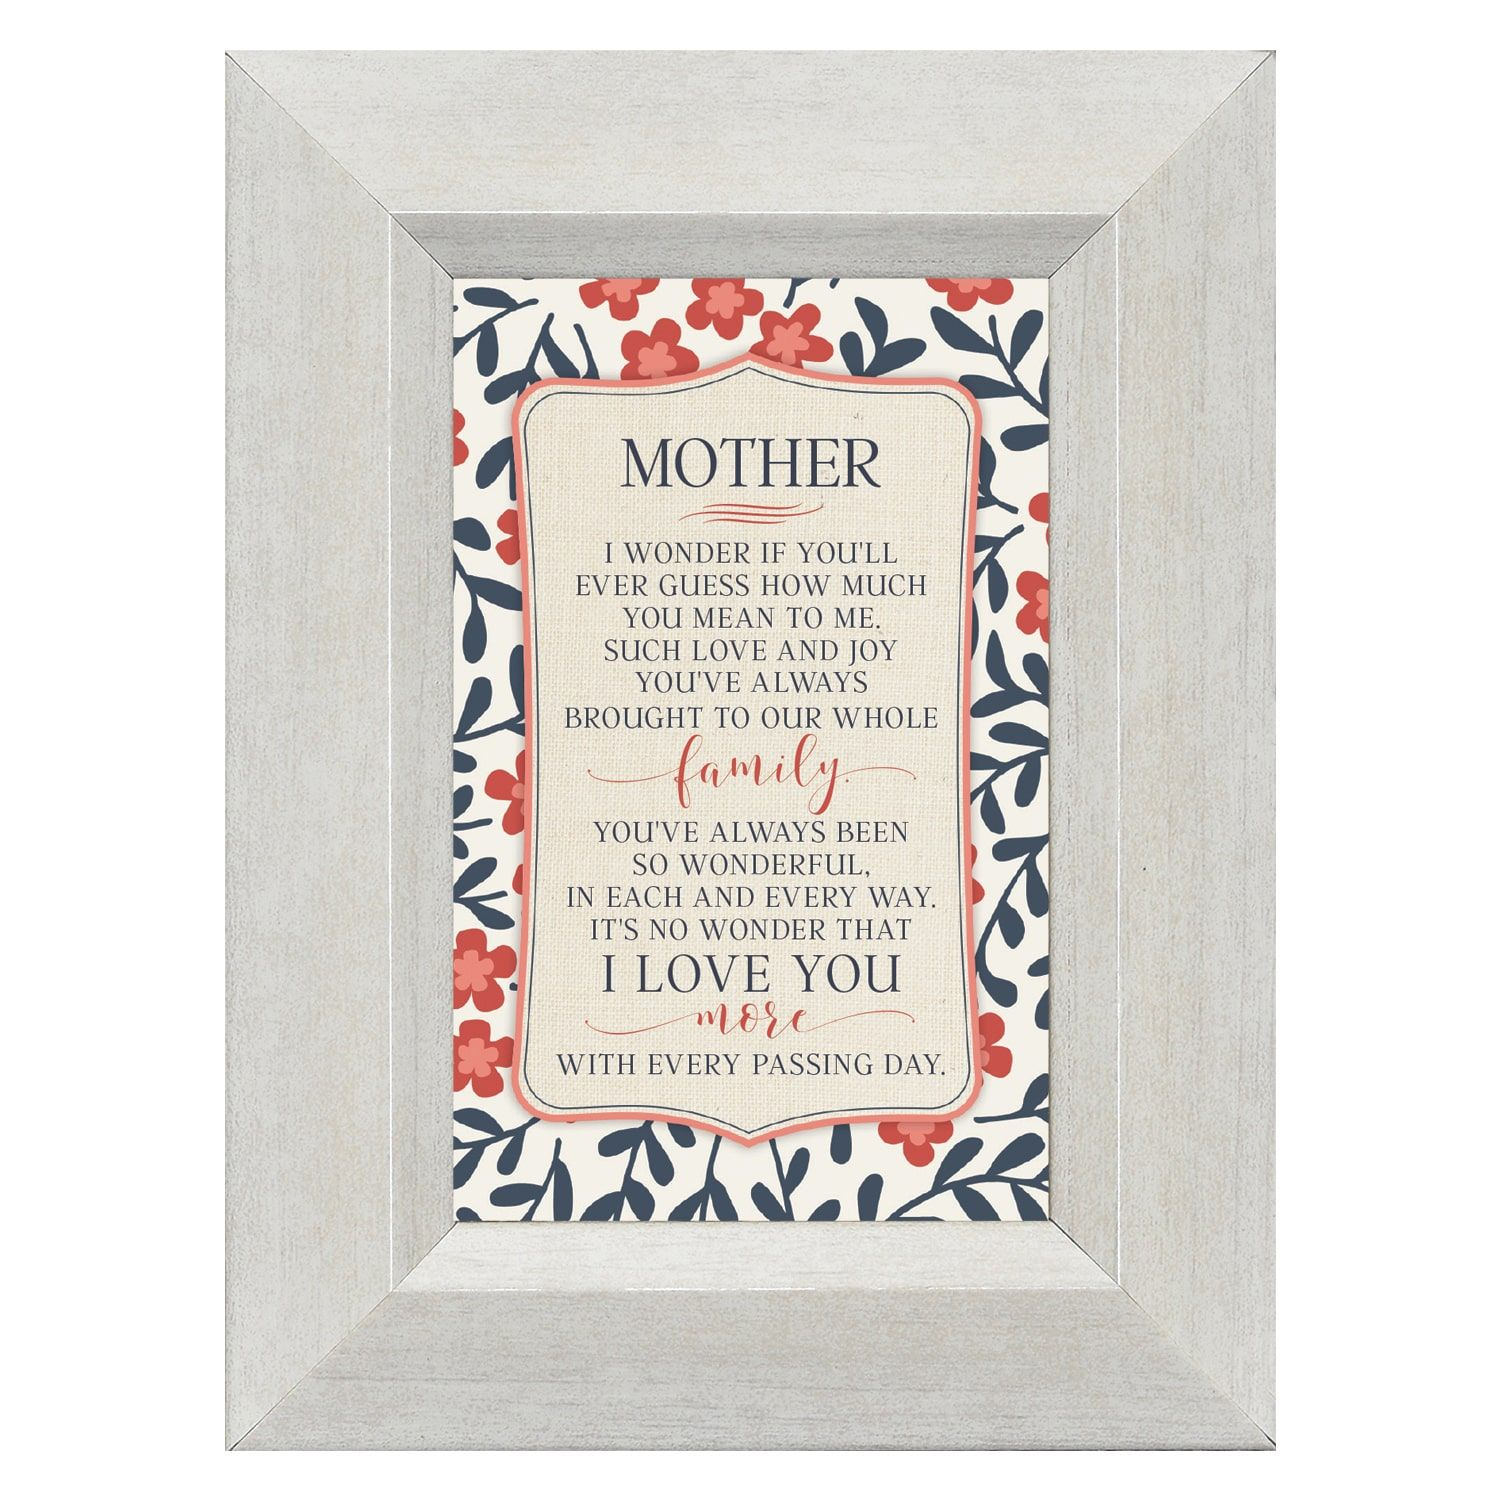 James Lawrence Mother I wonder if you'll ever guess how much you mean to me 4 5/8 x 6 1/8 Framed Art